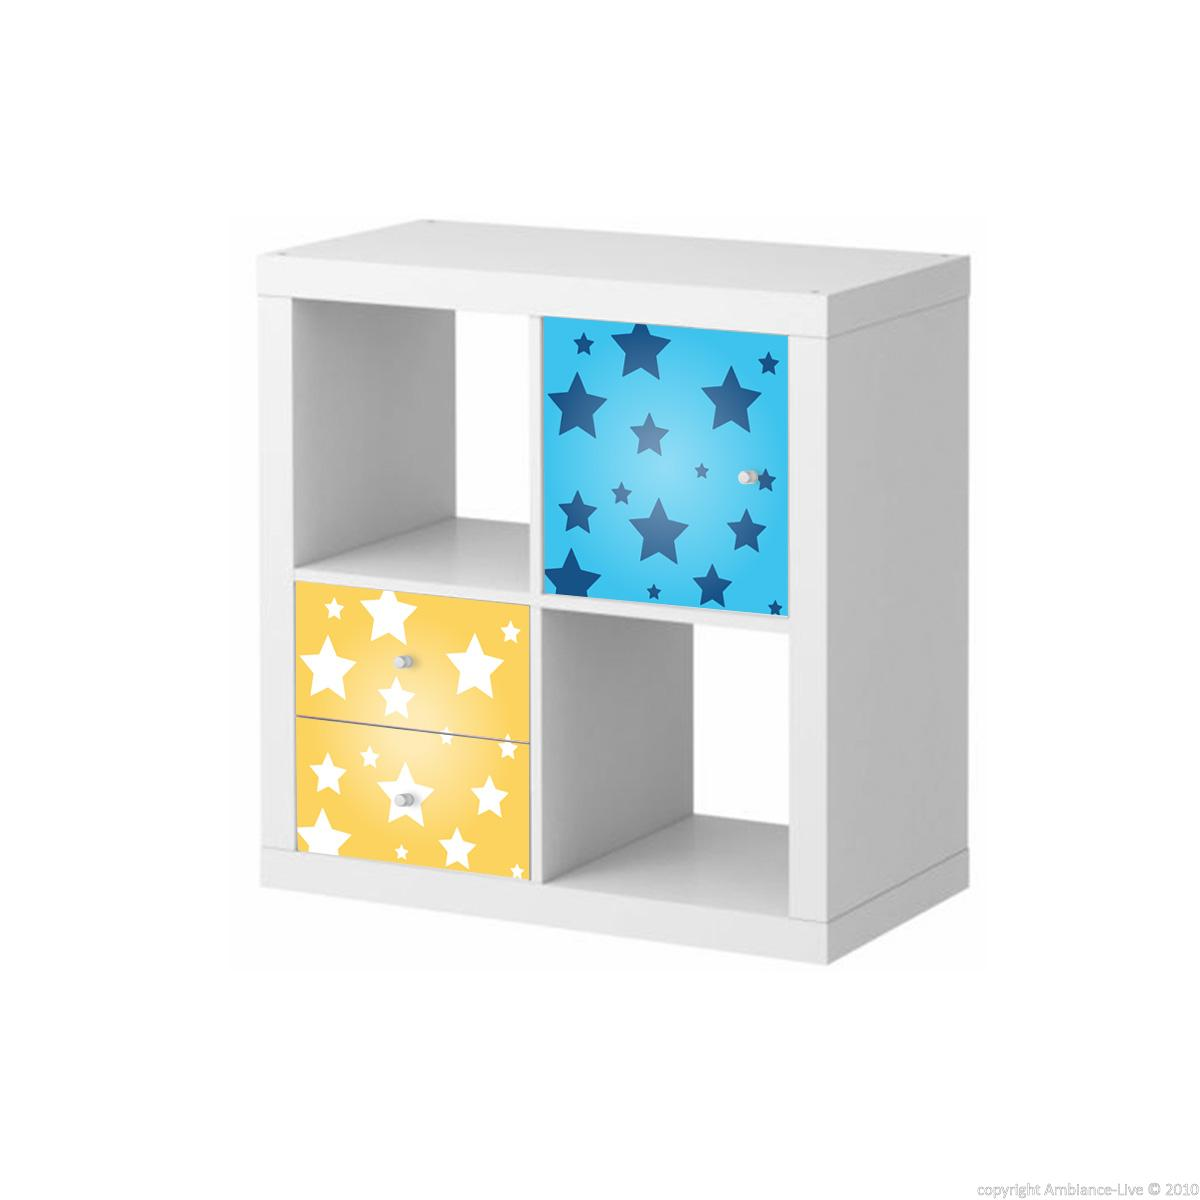 stickers meubles ikea stickers meubles ikea toiles sur fond bleu ambiance. Black Bedroom Furniture Sets. Home Design Ideas